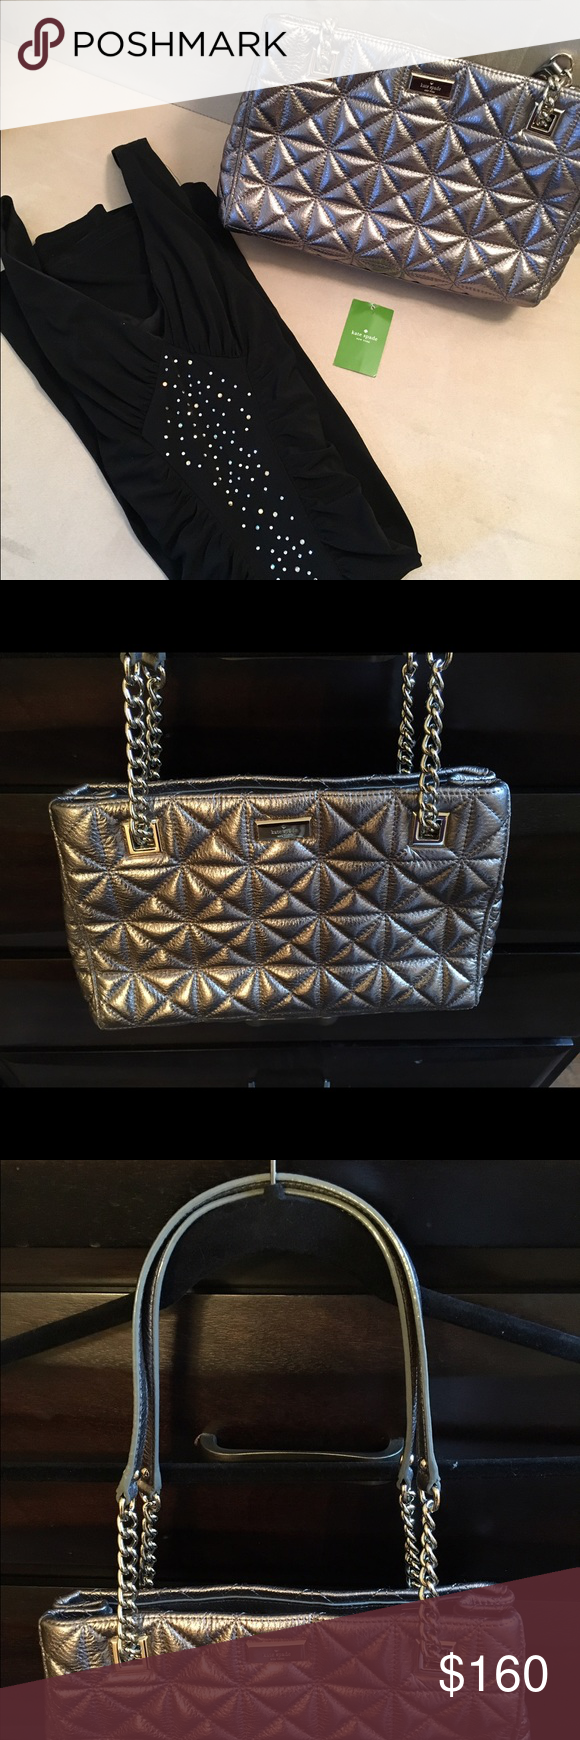 Kate Spade Silver Bag / Retails at $428 Beautiful & barely used bag! Retails for $428; bought at $220 (Also selling this dress in a separate listing) kate spade Bags